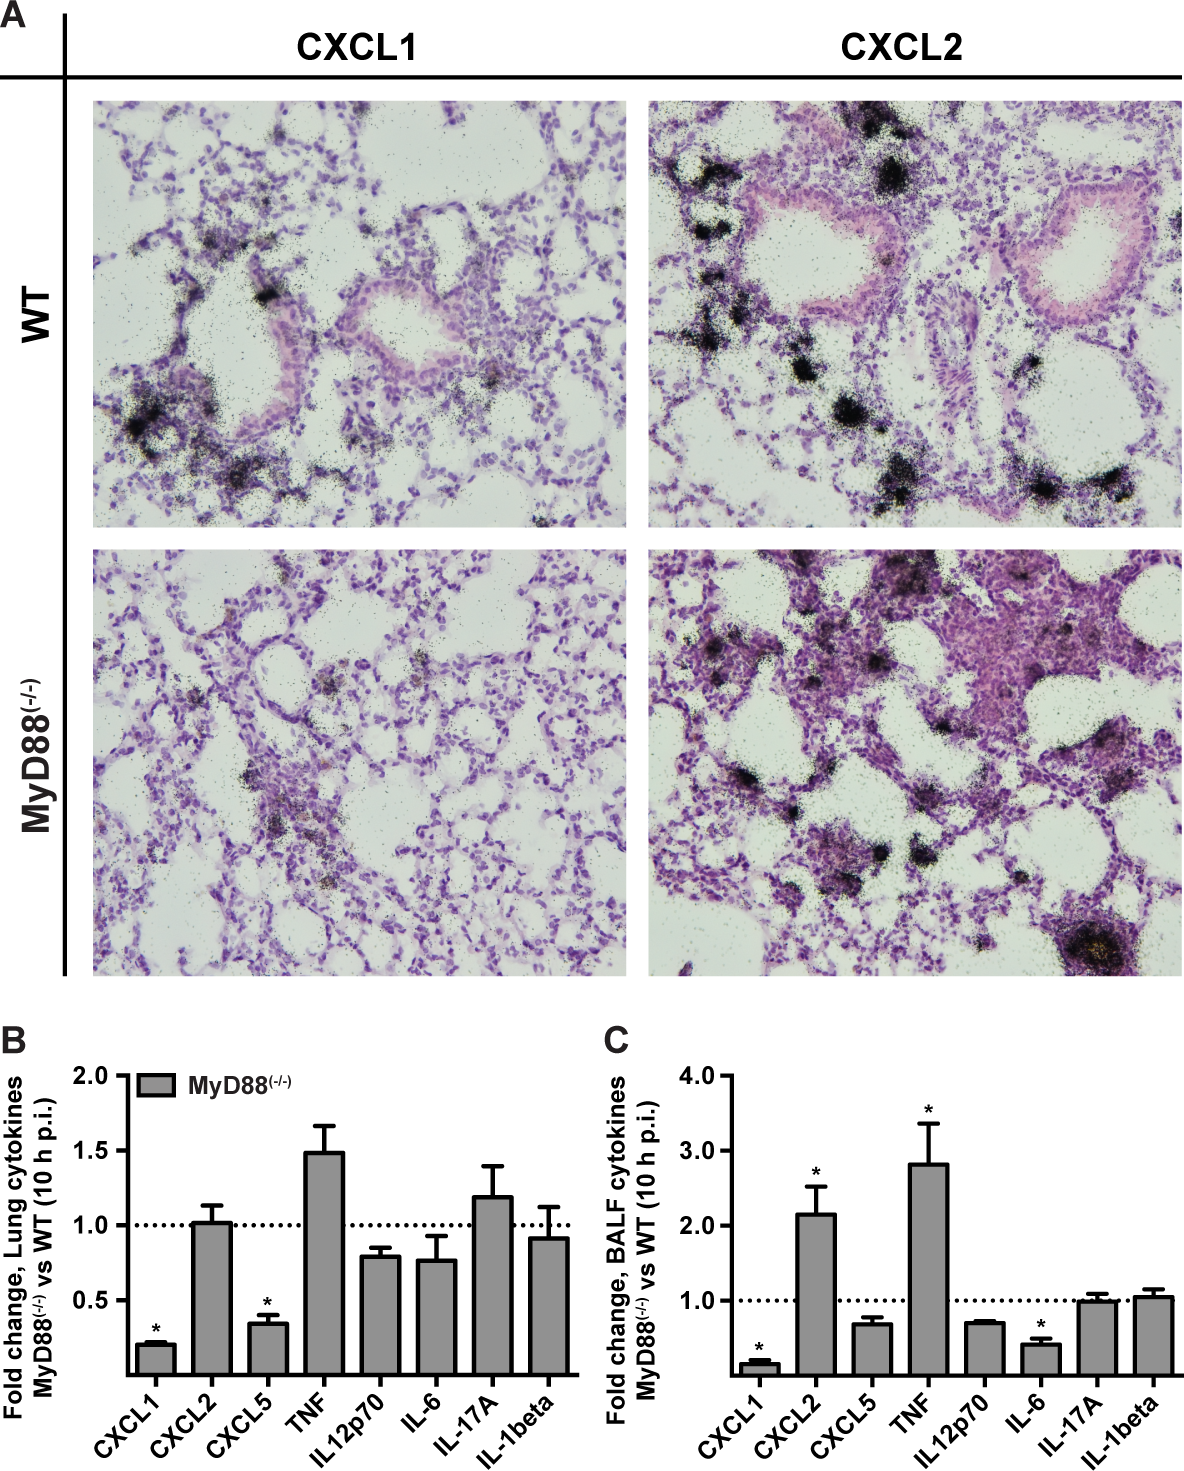 MyD88 is required for the first phase of CXCL1 induction in the lung.